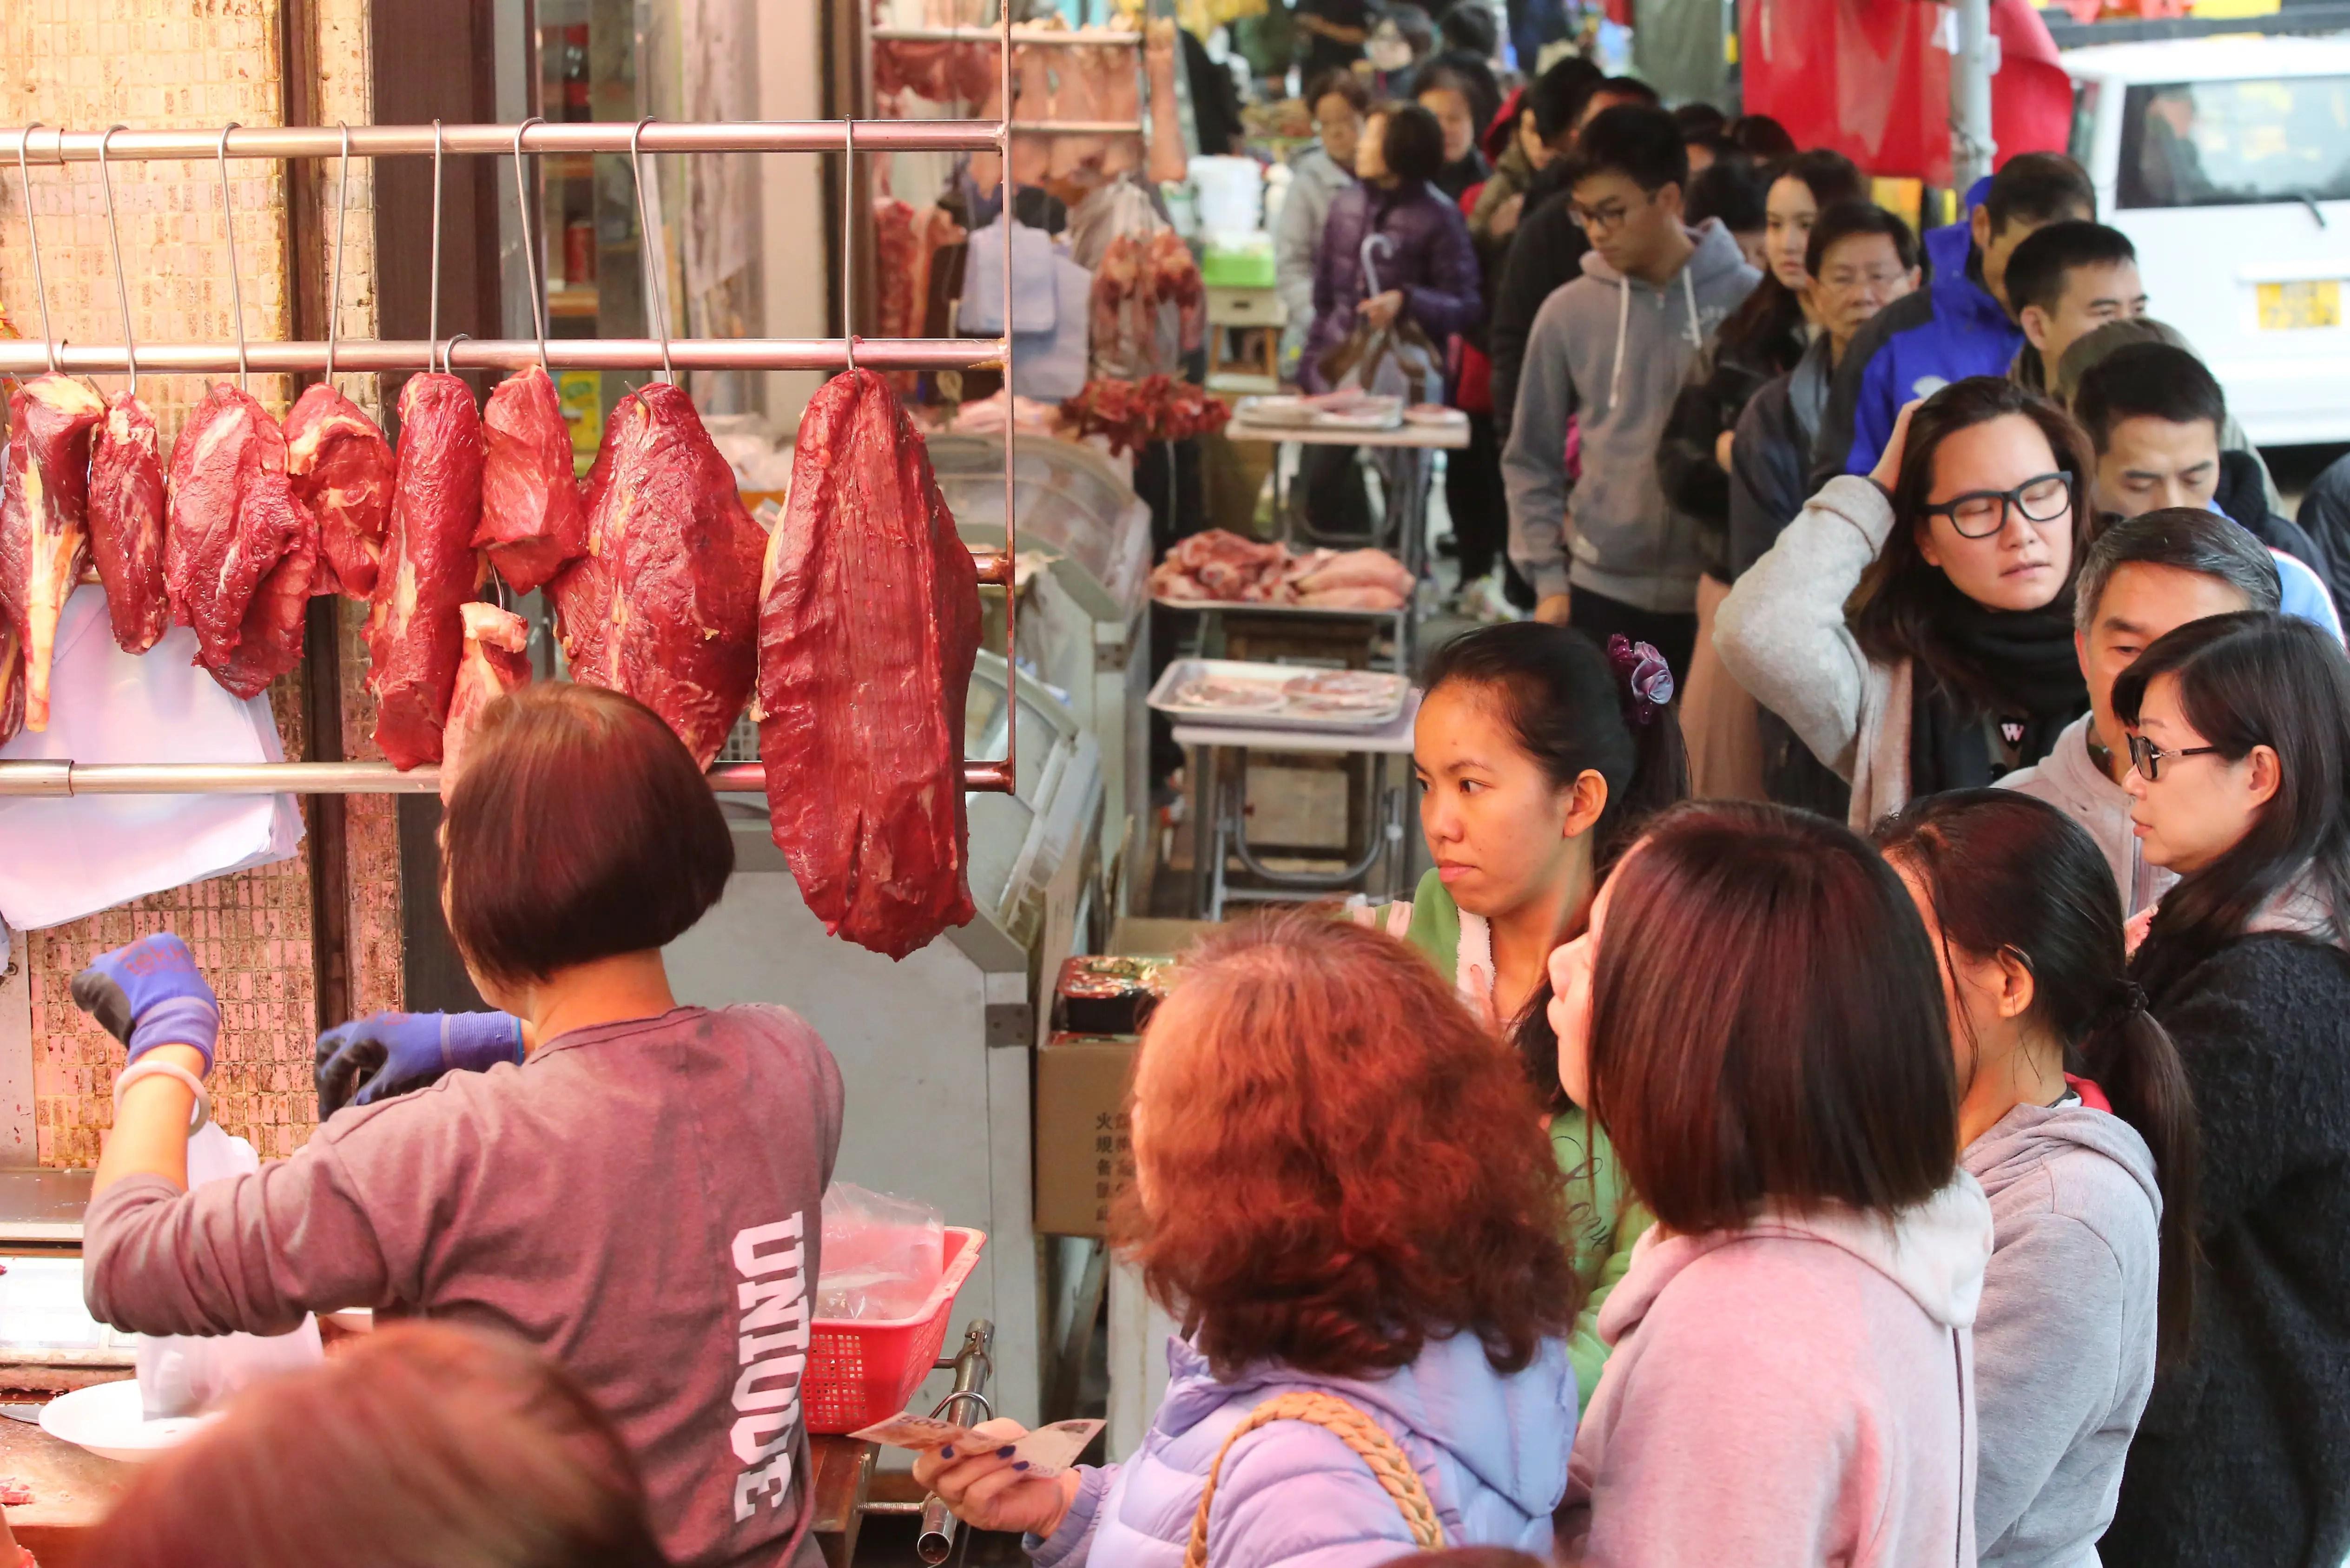 The coronavirus outbreak likely started in a Wuhan wet market ...